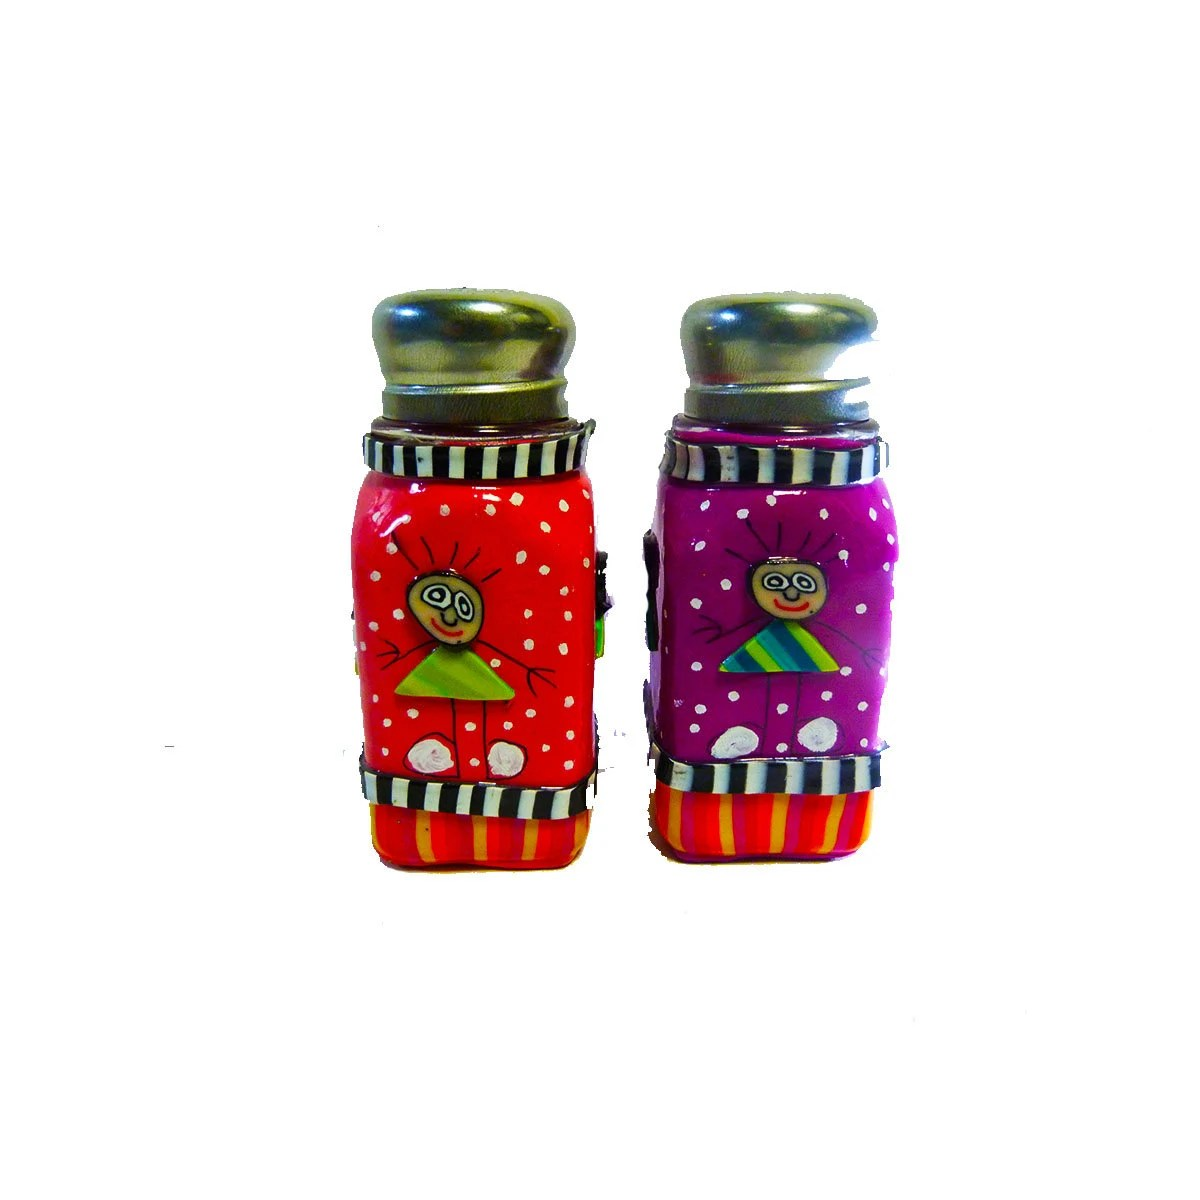 Modern Salt And Pepper Shakers Salt And Pepper Shakers Modern Salt And Pepper Shakers By